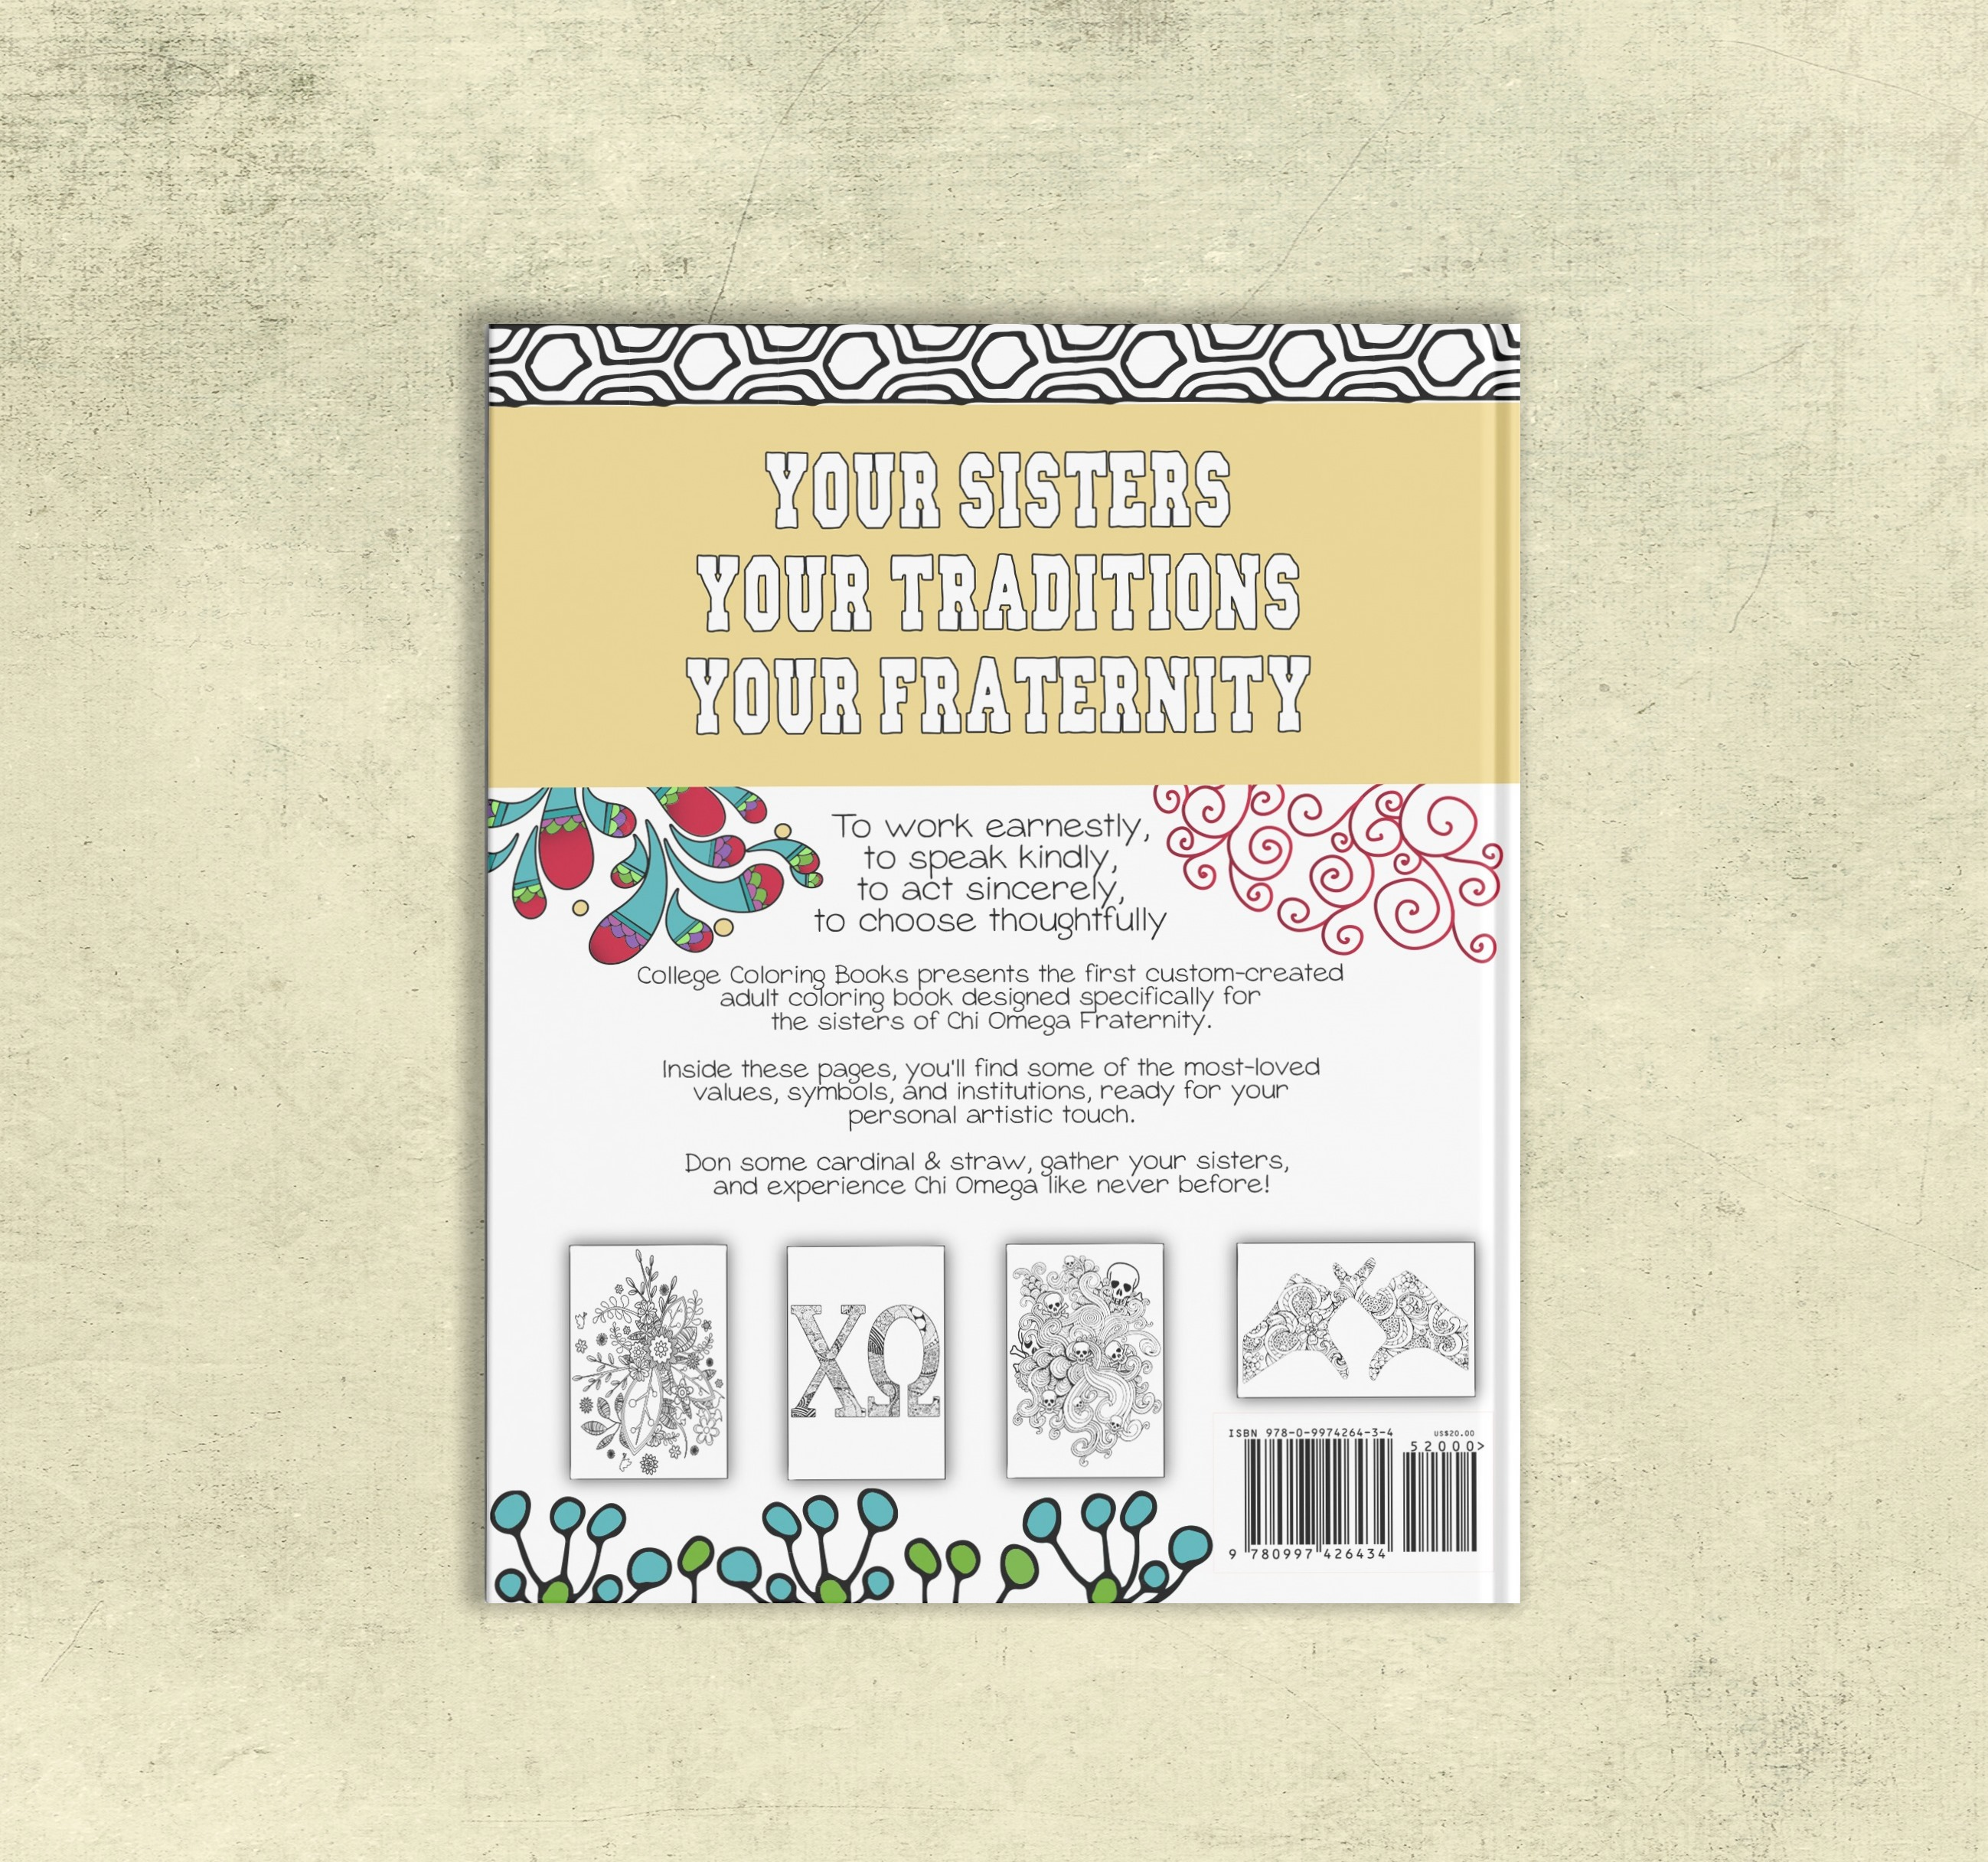 College Coloring Books Chi Omega Coloring Book Cover - Back